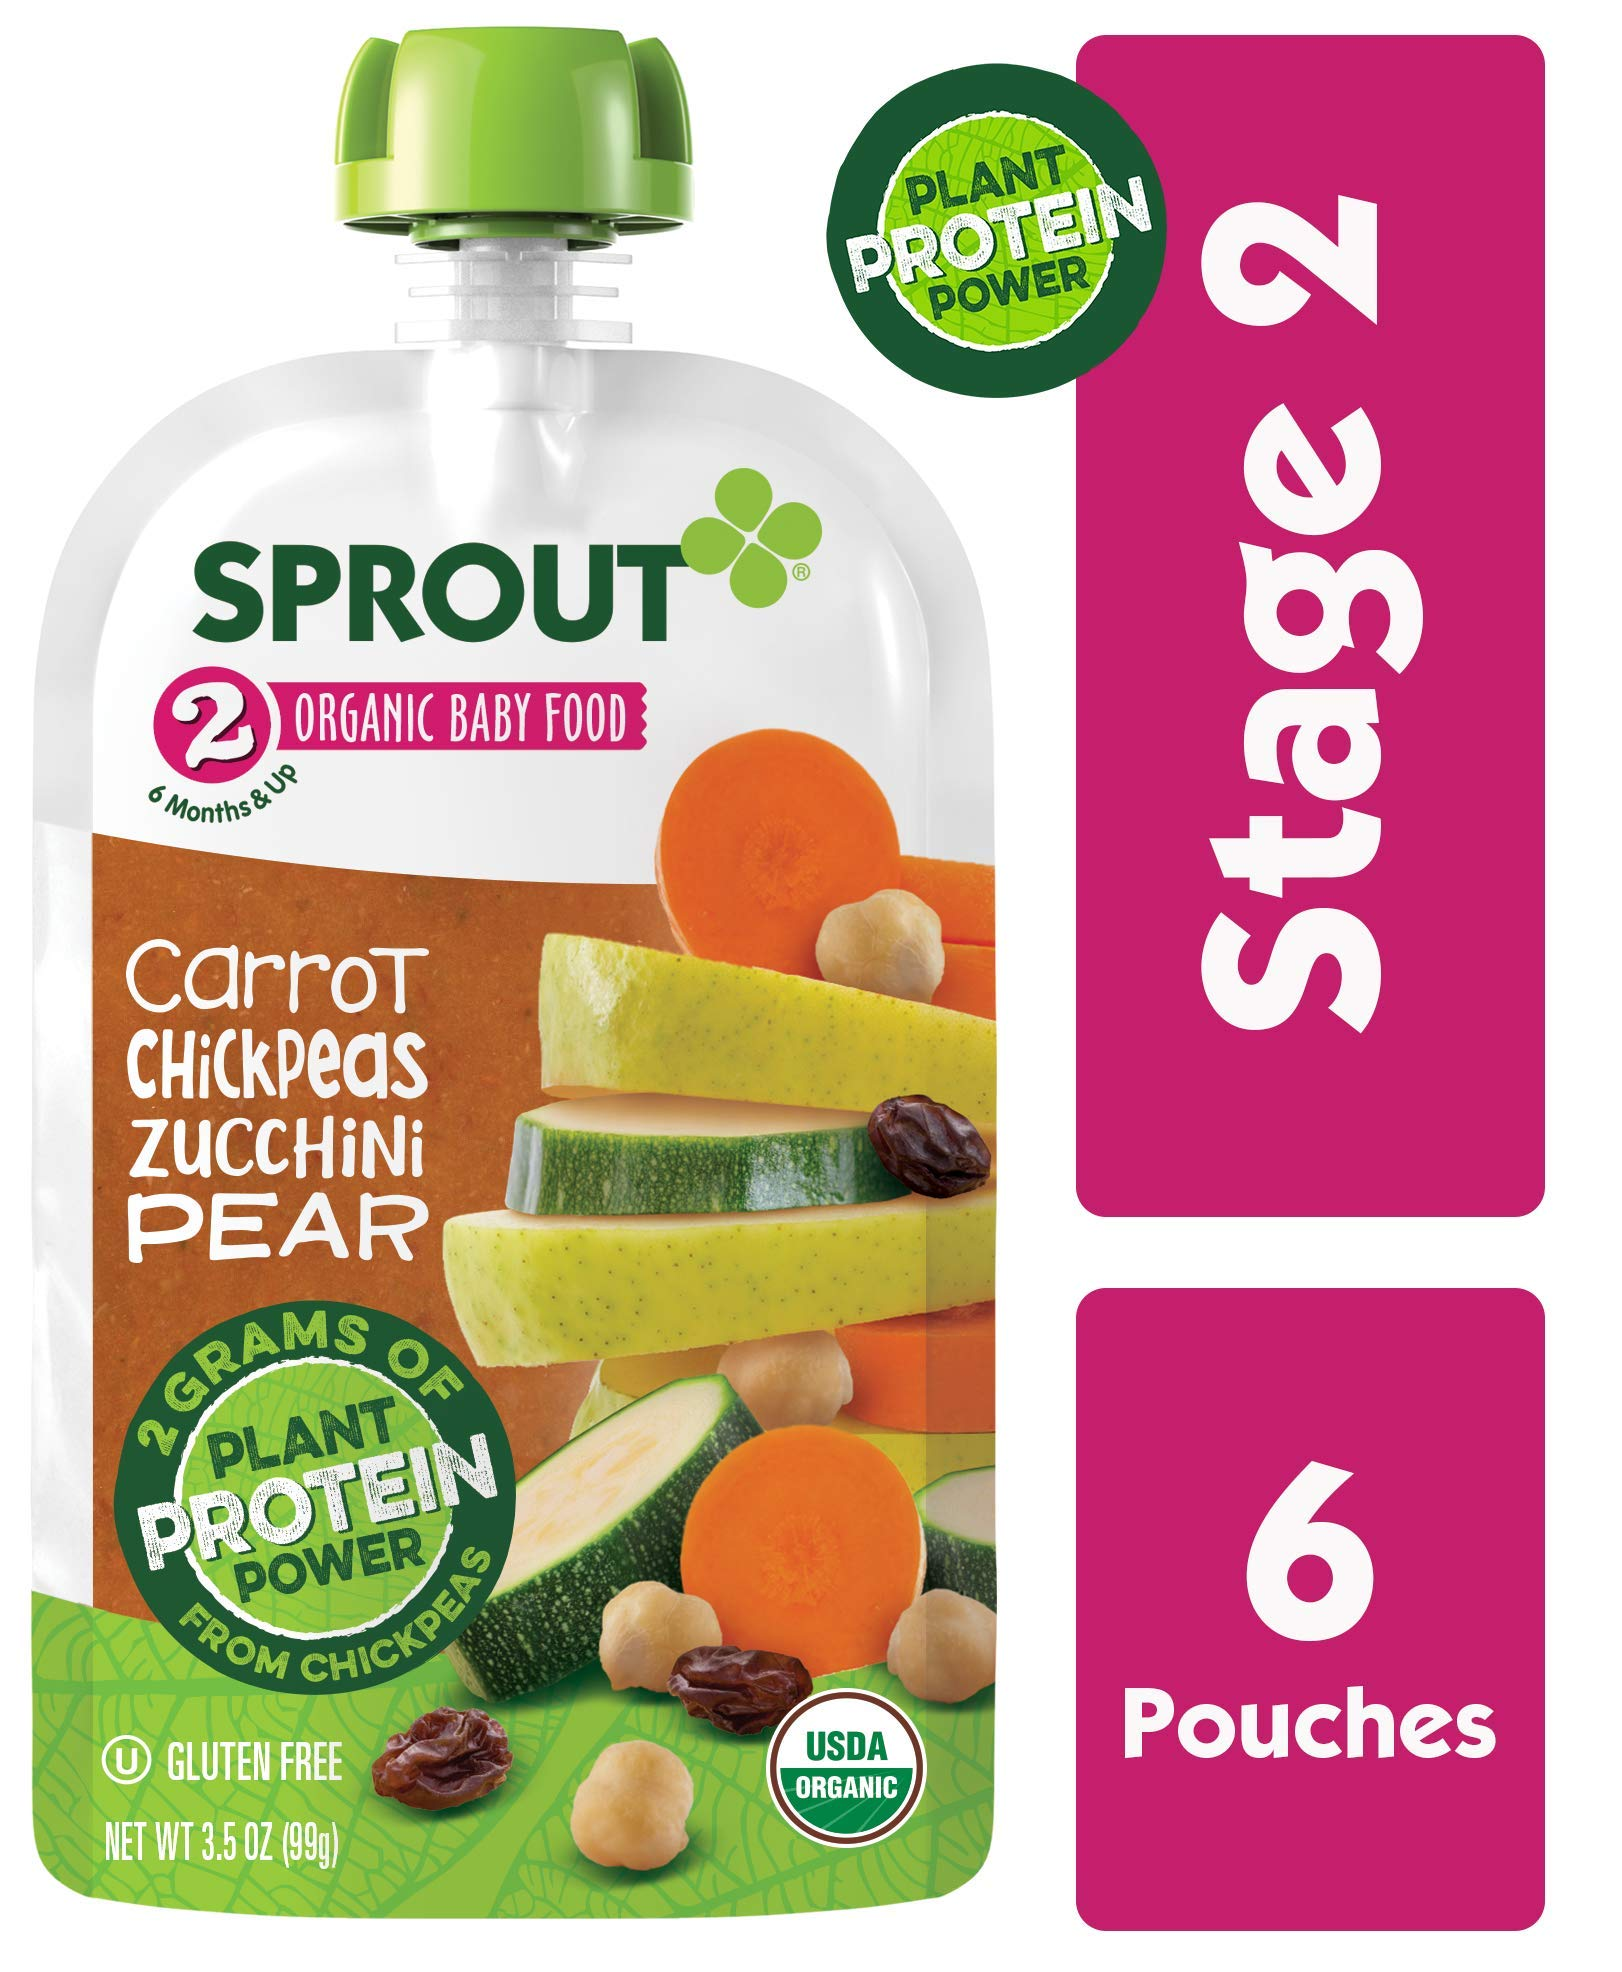 Sprout Organic Baby Food Pouches, Stage 2 Sprout Baby Food, Plant ProteinCarrot Chickpeas Zucchini Pear, 3.5 Ounce (6 Count) 2 Grams of Plant Powered Protein, USDA Organic, Non-GMO, Nothing Artificial